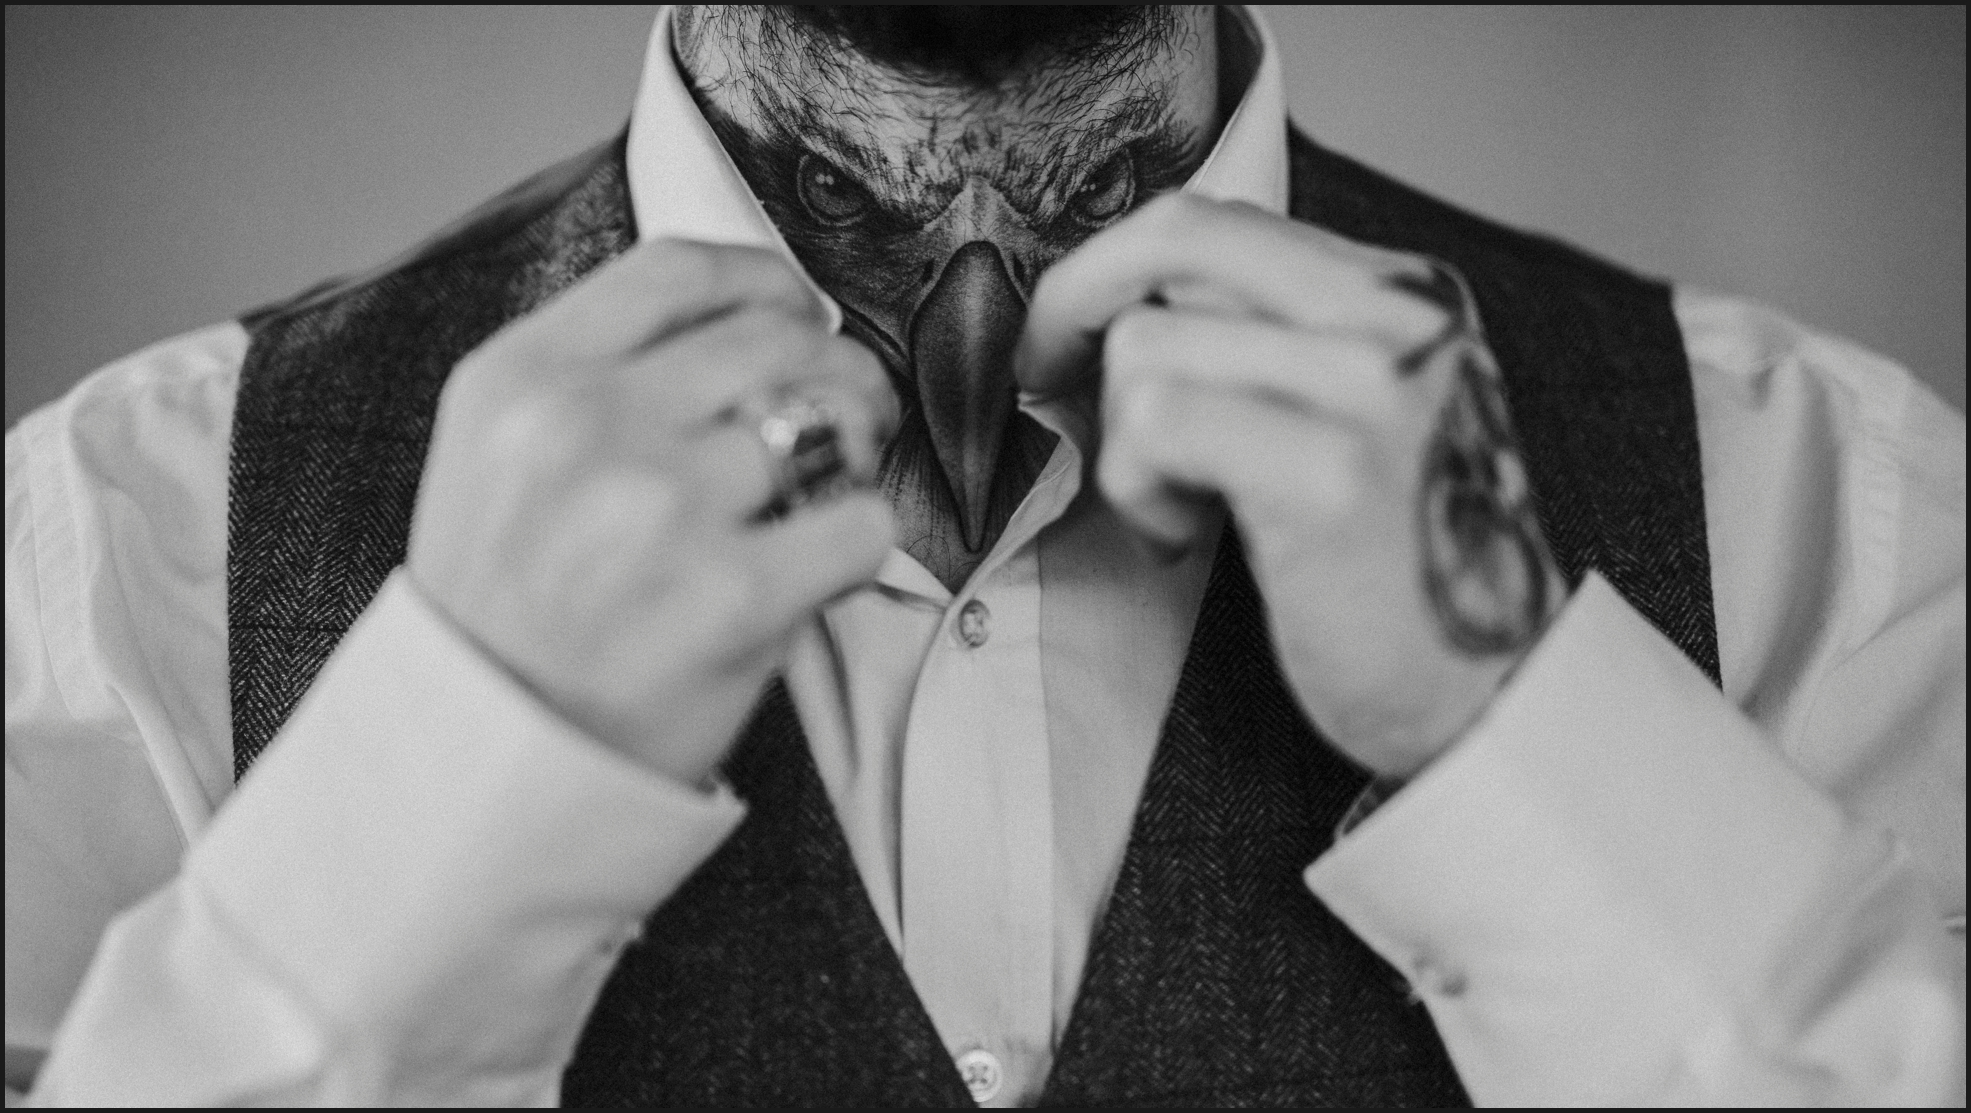 black and white, groom, preparation, getting ready, tattoo